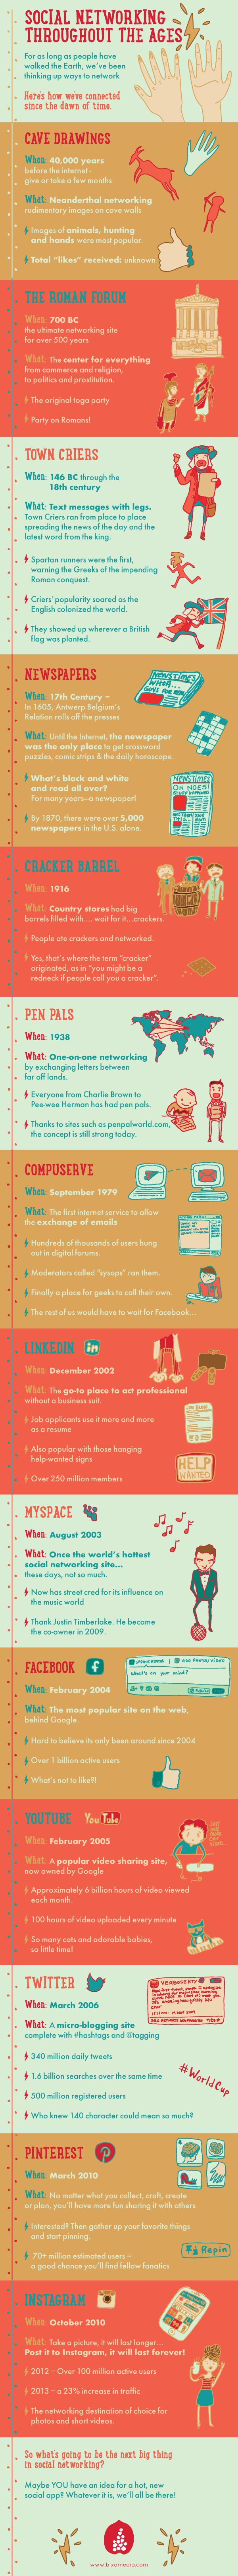 Social Networking Throughout The Ages - #infographic #socialmedia #socialmediastats